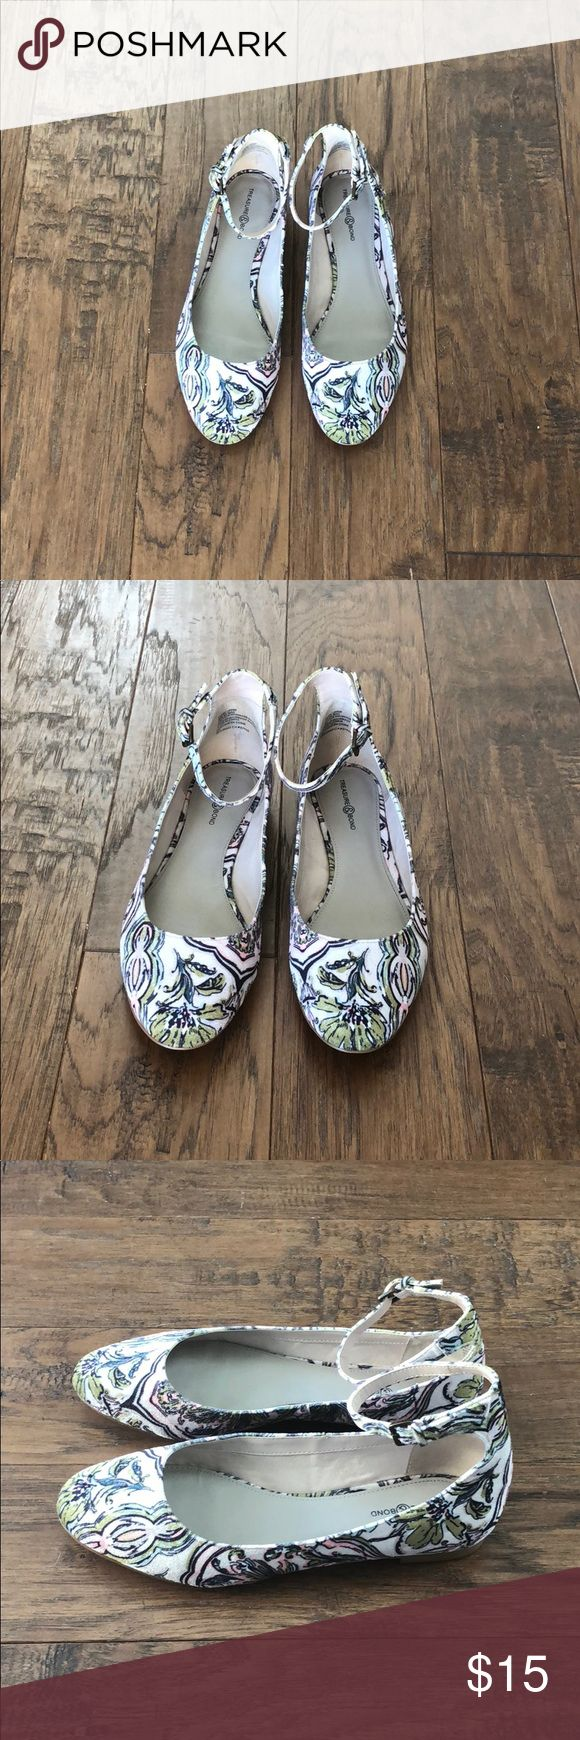 Floral Print Velvet Flats! Purchased from Nordstrom anniversary sale earlier this year and it's just too dang cold to wear them here! In great condition, only worn a couple of times. Velvet texture and super cute ankle strap!! Nordstrom Shoes Flats & Loafers